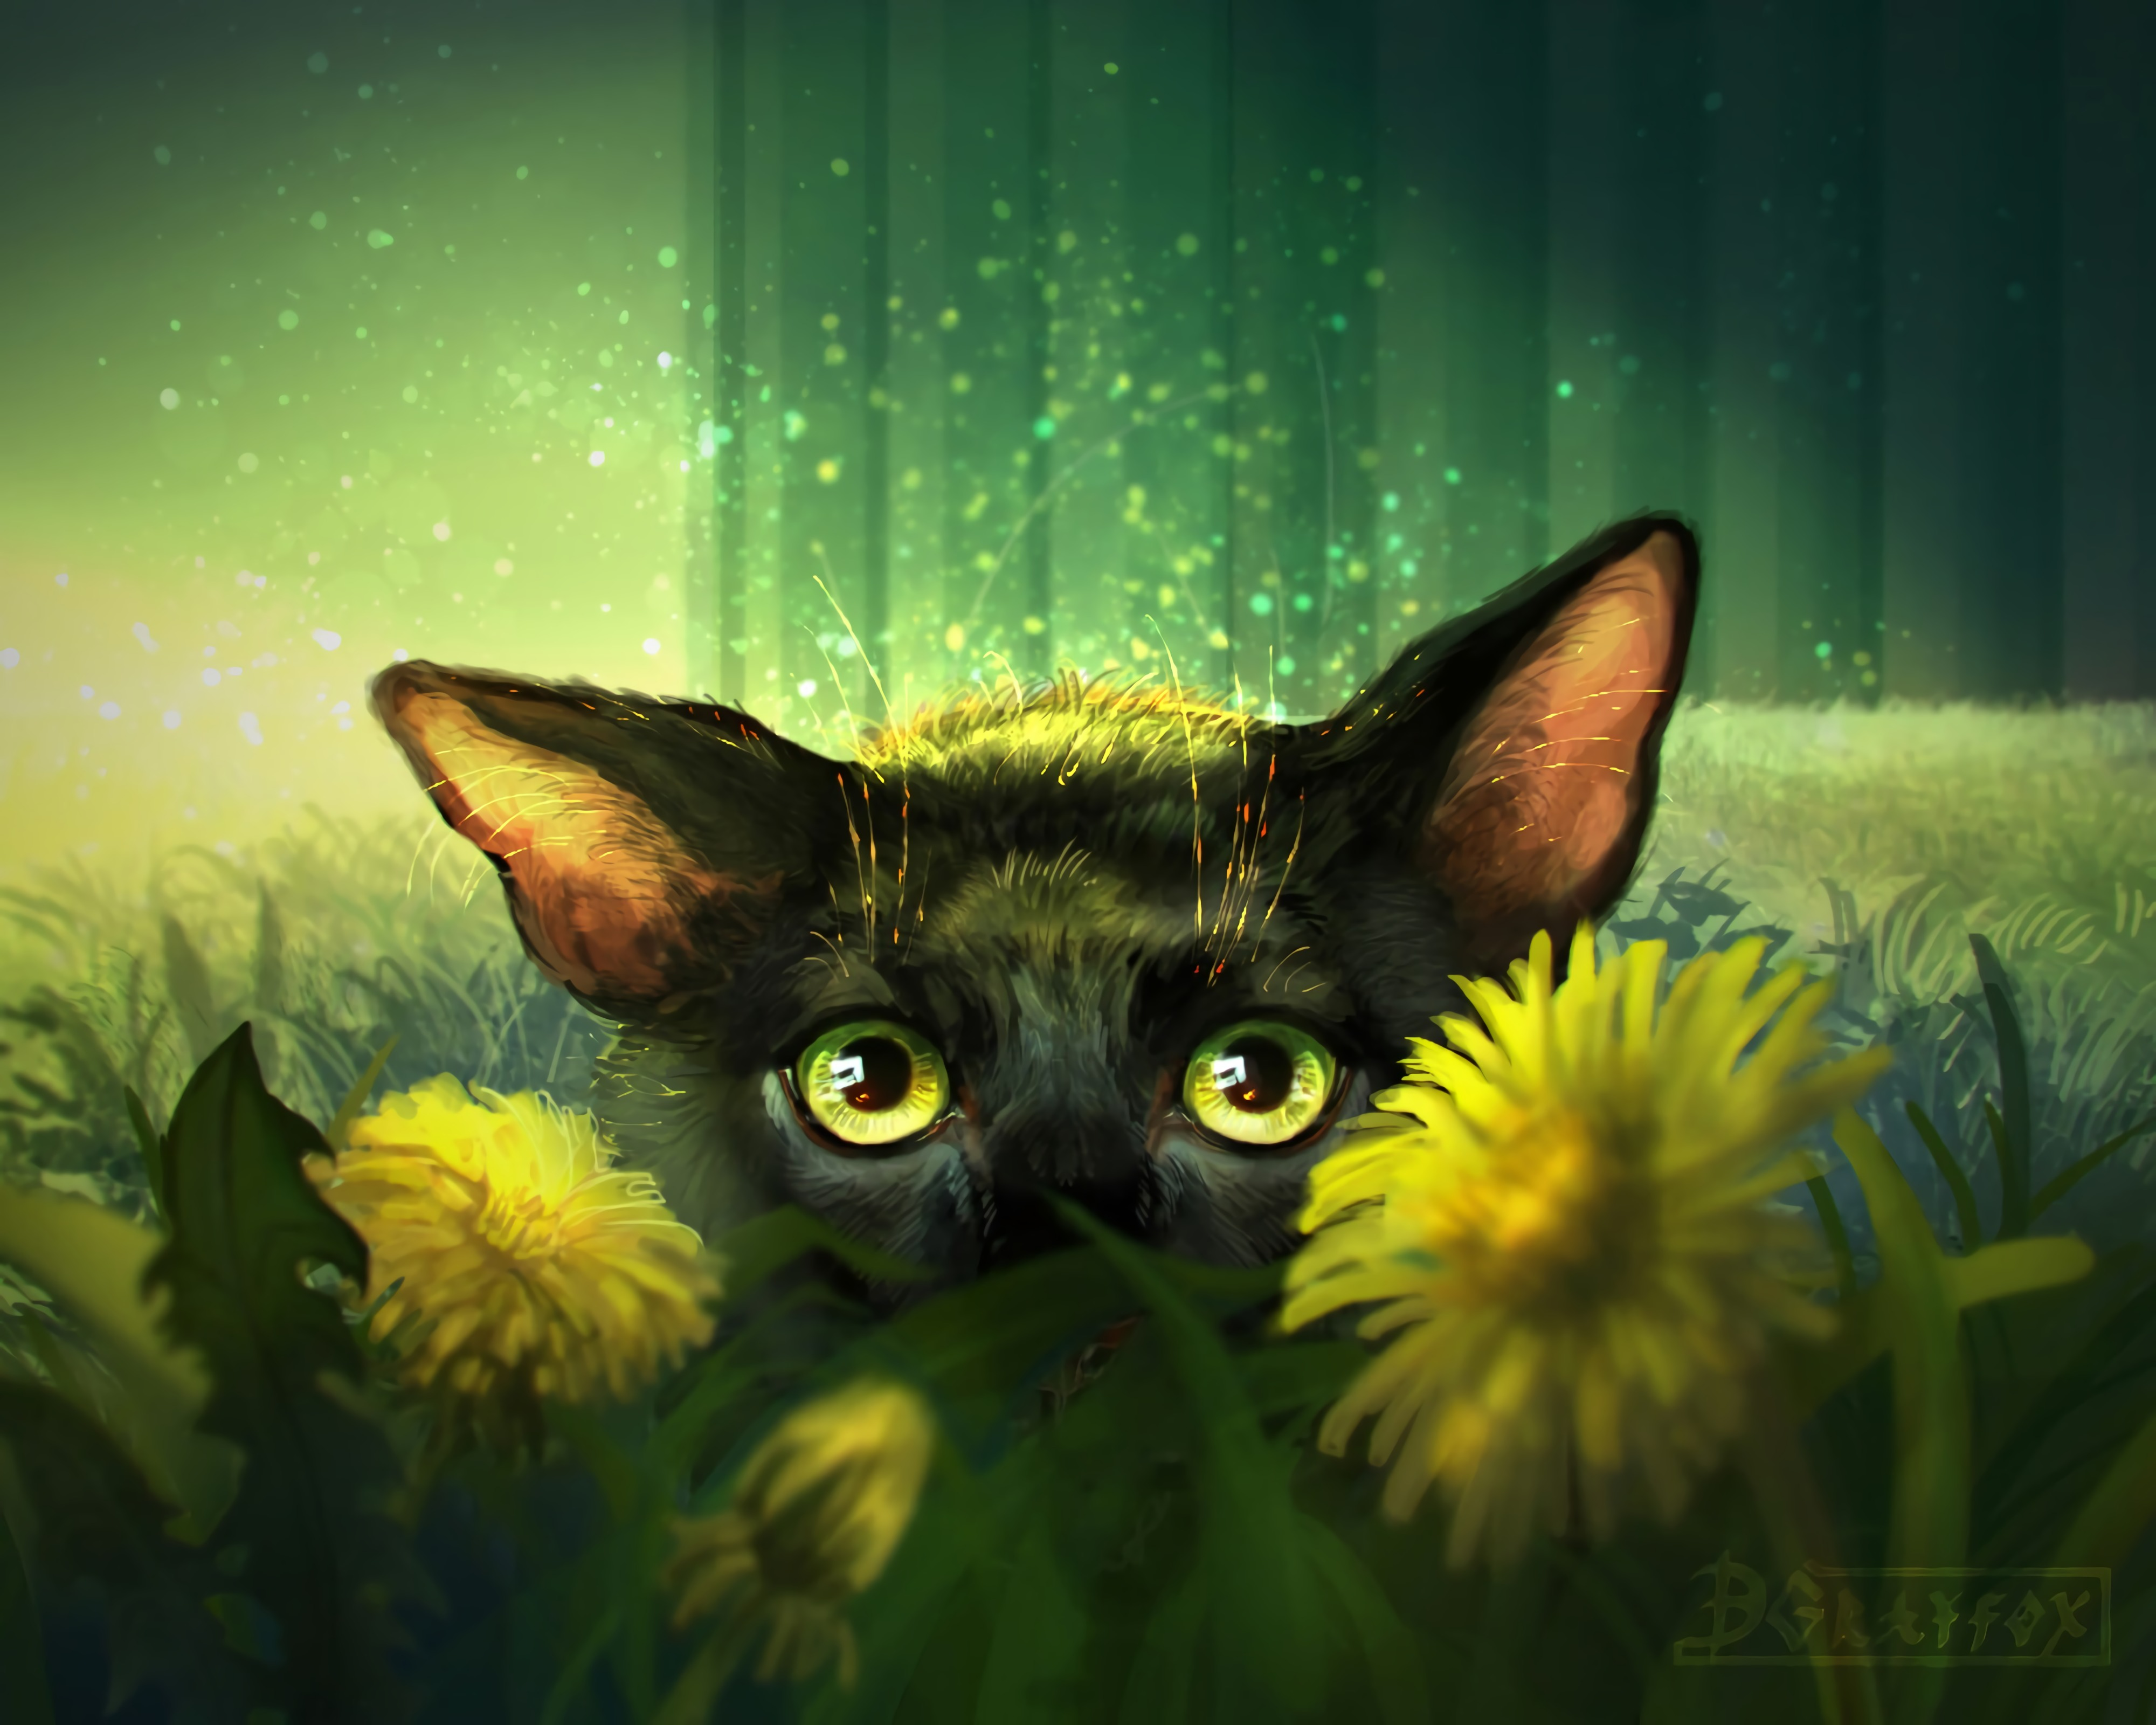 133178 download wallpaper Cat, Art, Eyes, Sight, Opinion, Flowers screensavers and pictures for free